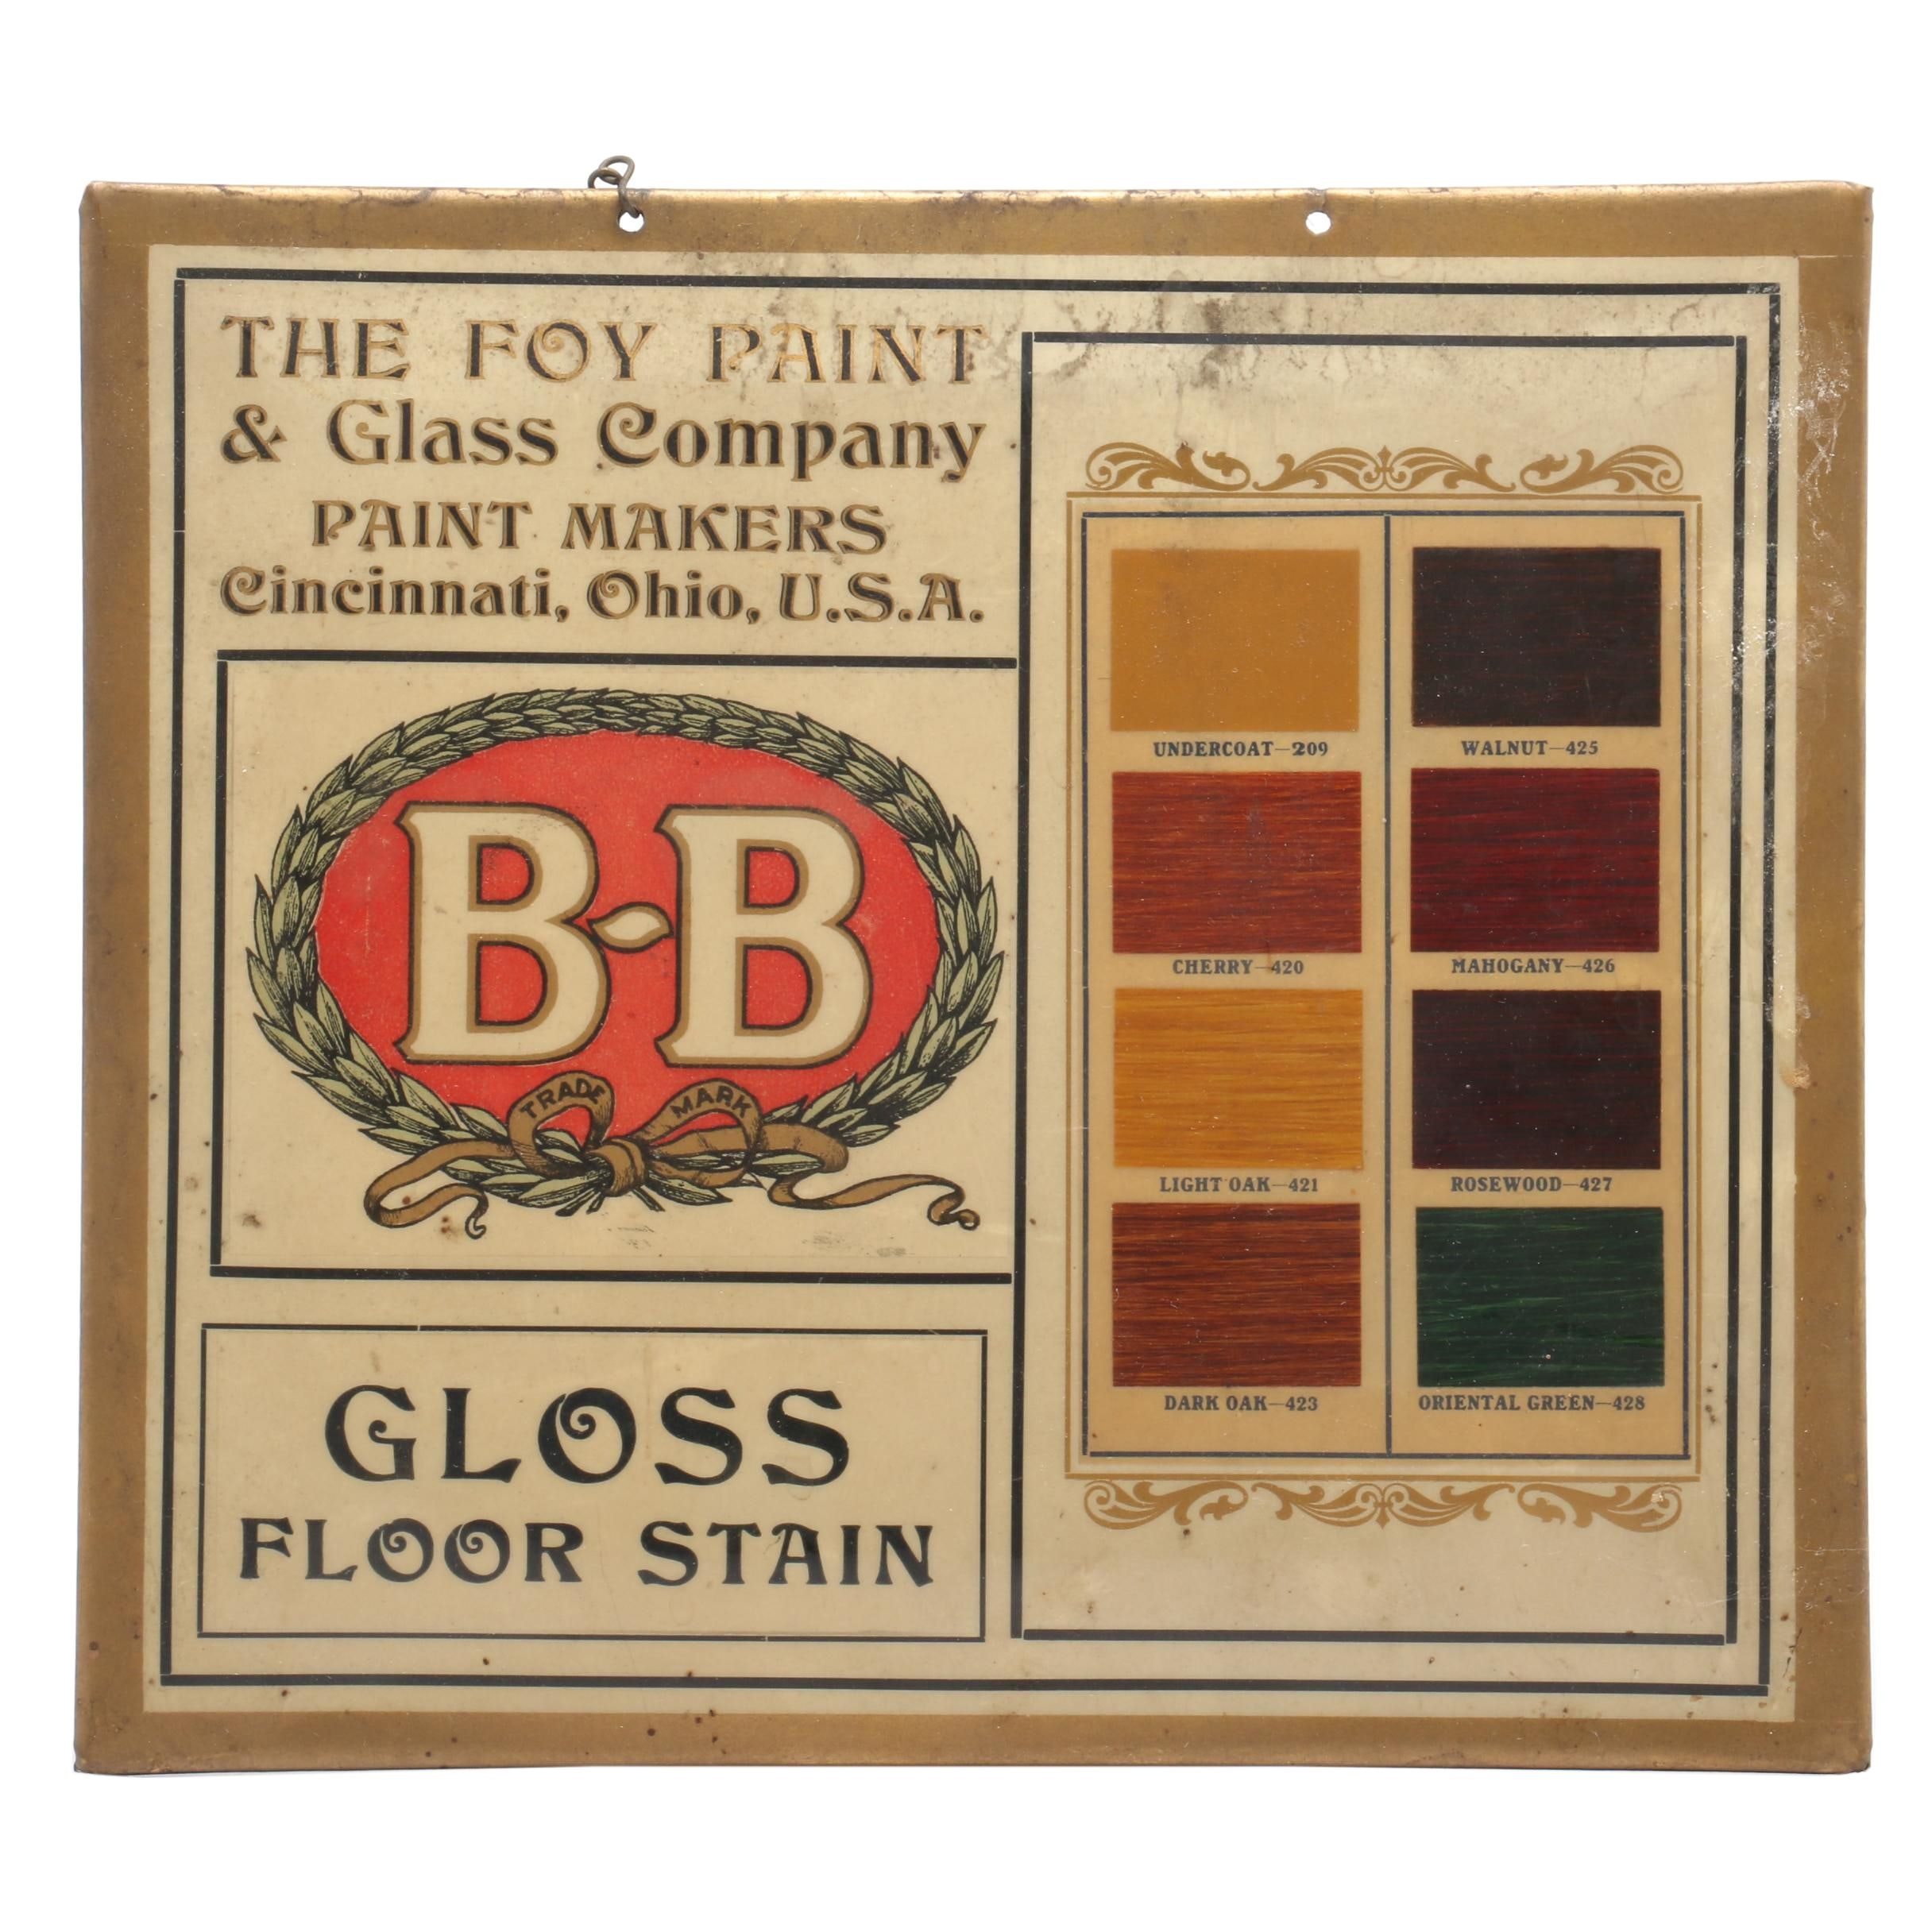 The Foy Paint & Glass Company Gloss Floor Stain Advertising Sign